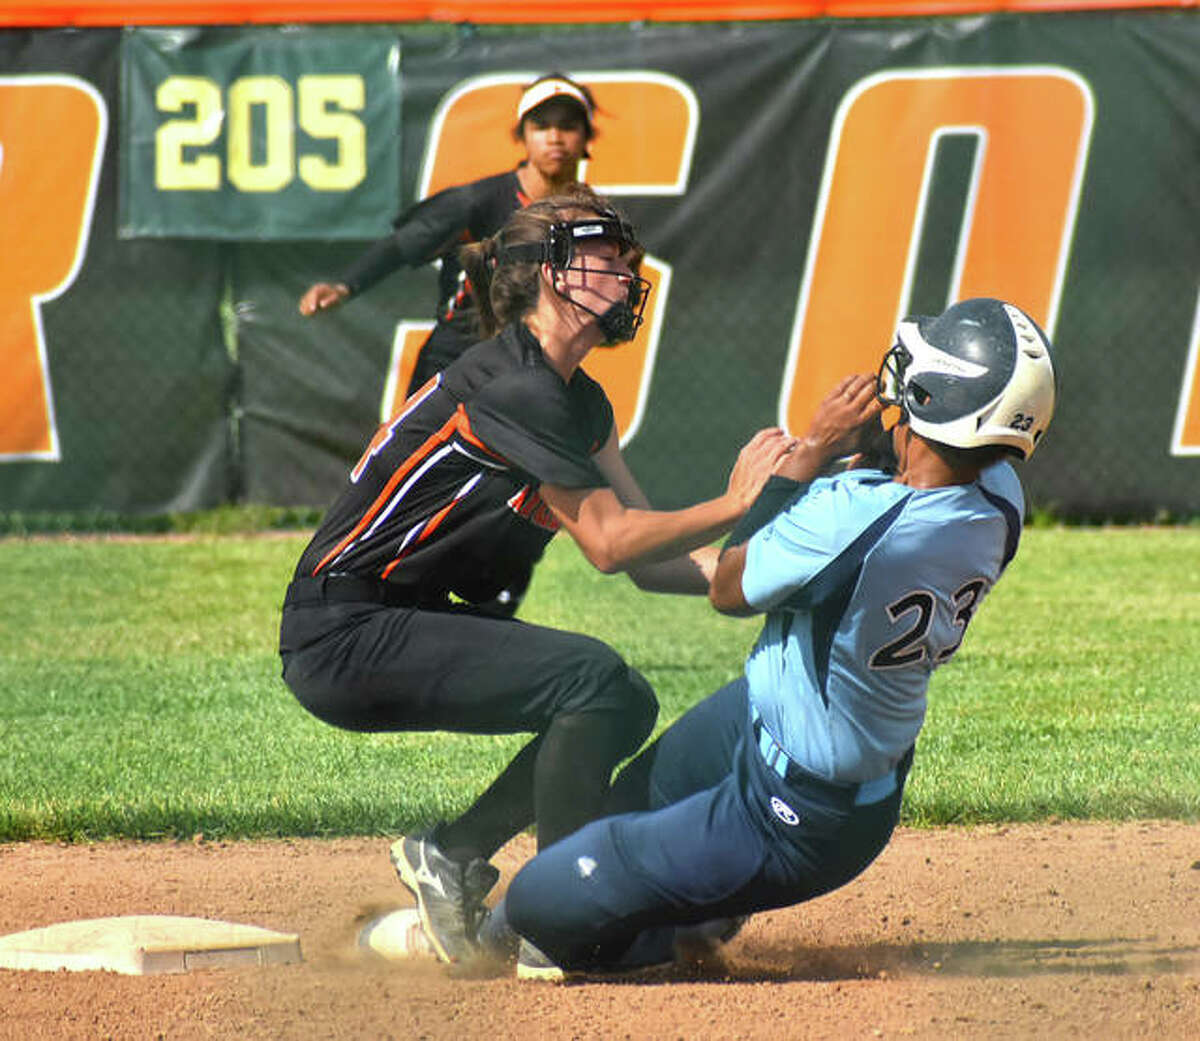 Edwardsville shortstop Tatum VanRyswyk tags out a would-be base stealer at second base in the first inning Wednesday inside the District 7 Sports Complex.